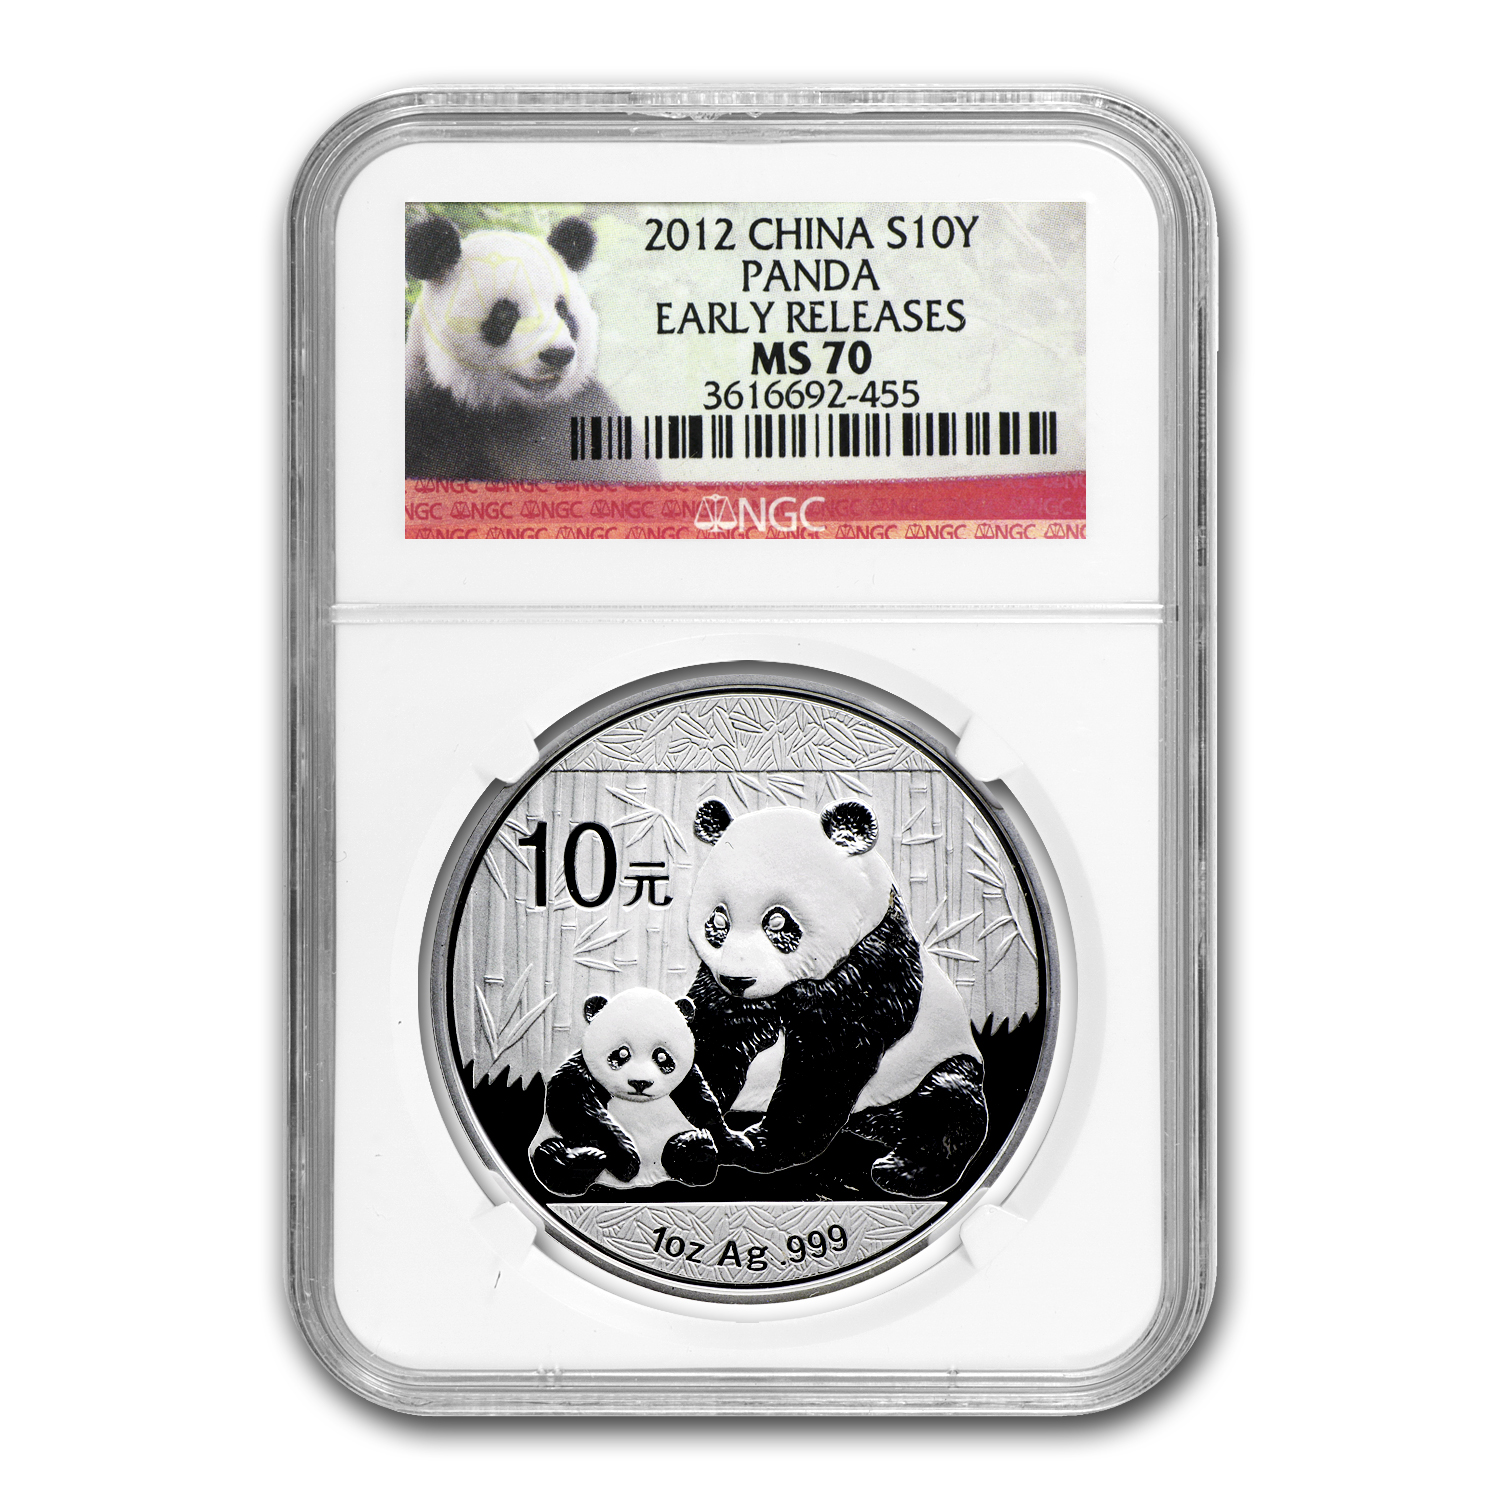 2012 China 1 oz Silver Panda MS-70 NGC (Early Releases)